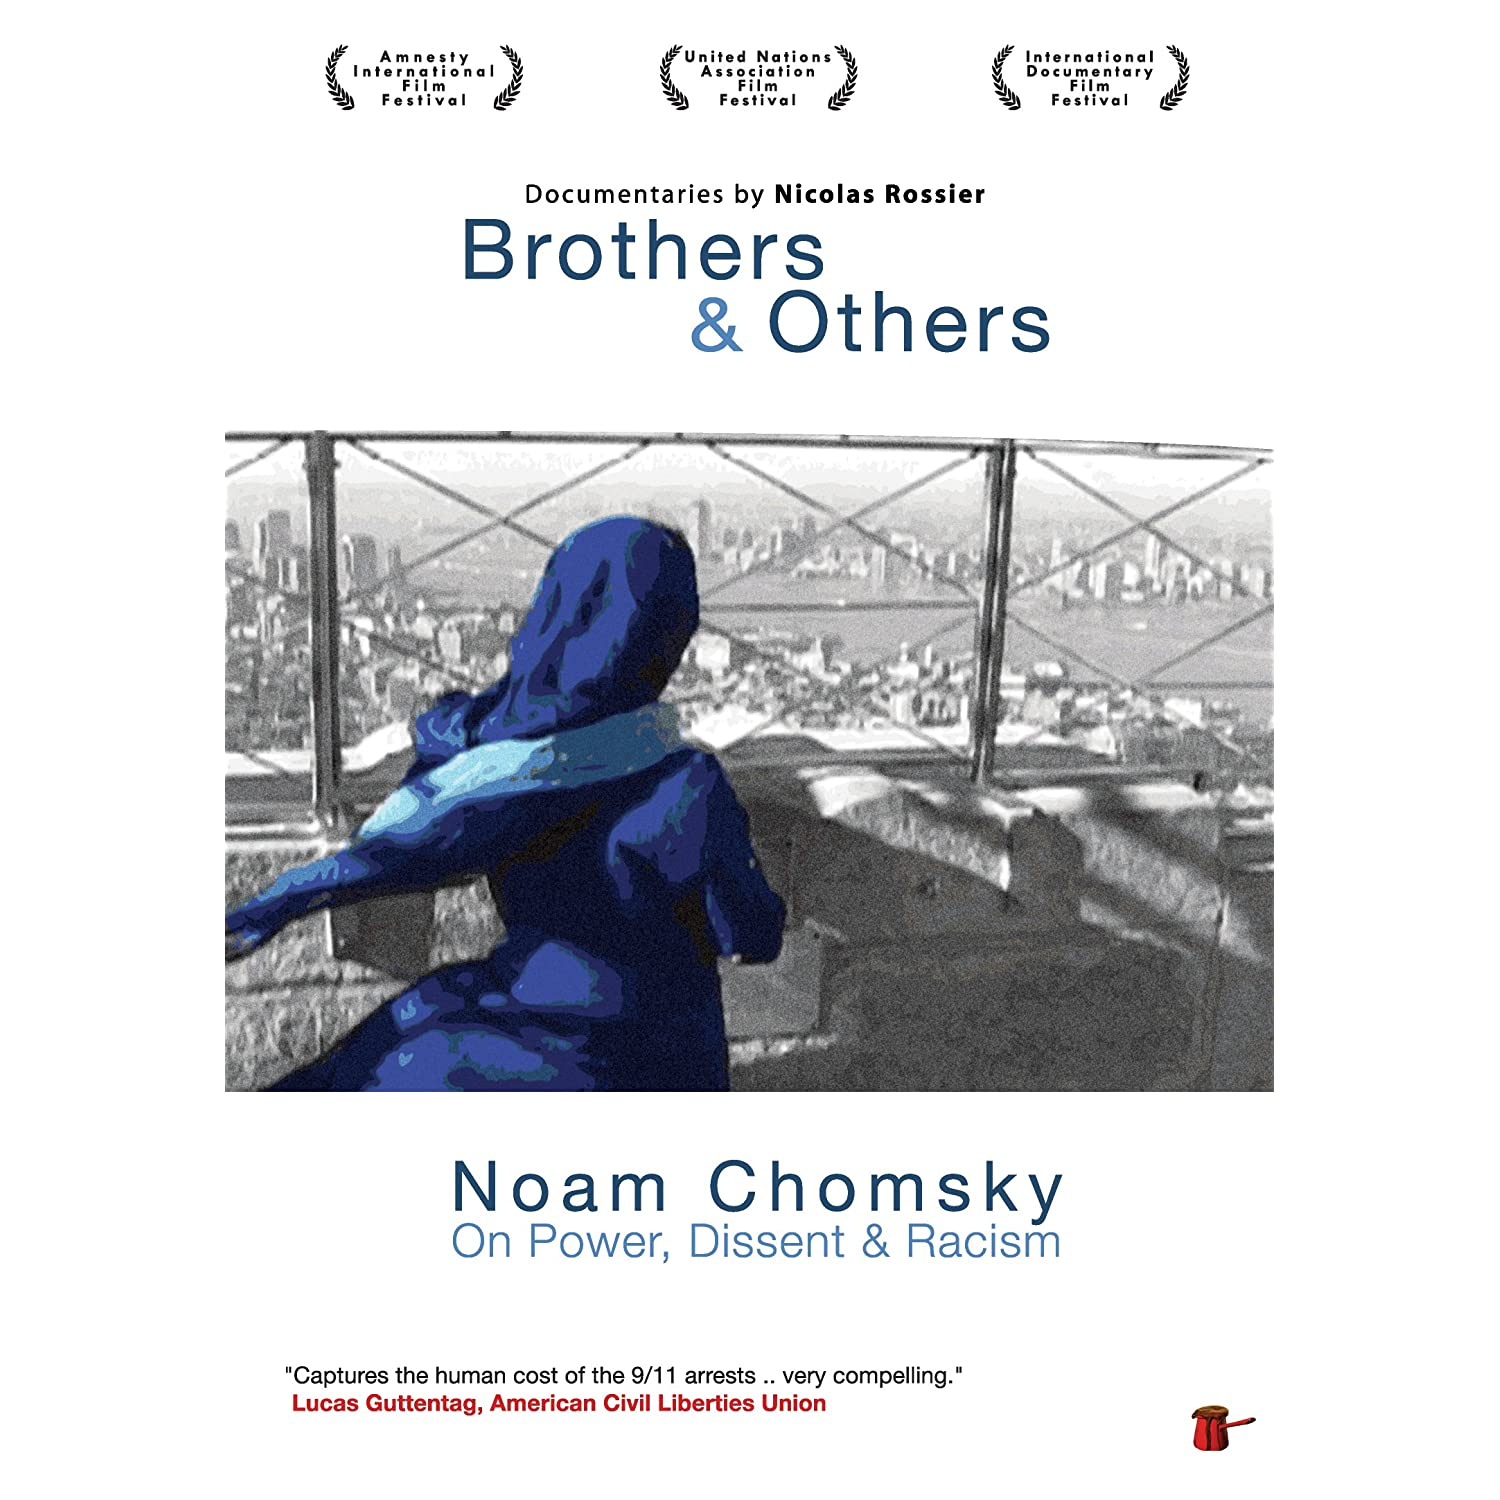 Documentary: Brothers & Others and Noam Chomsky: On Power, Dissent and Racism (2002)